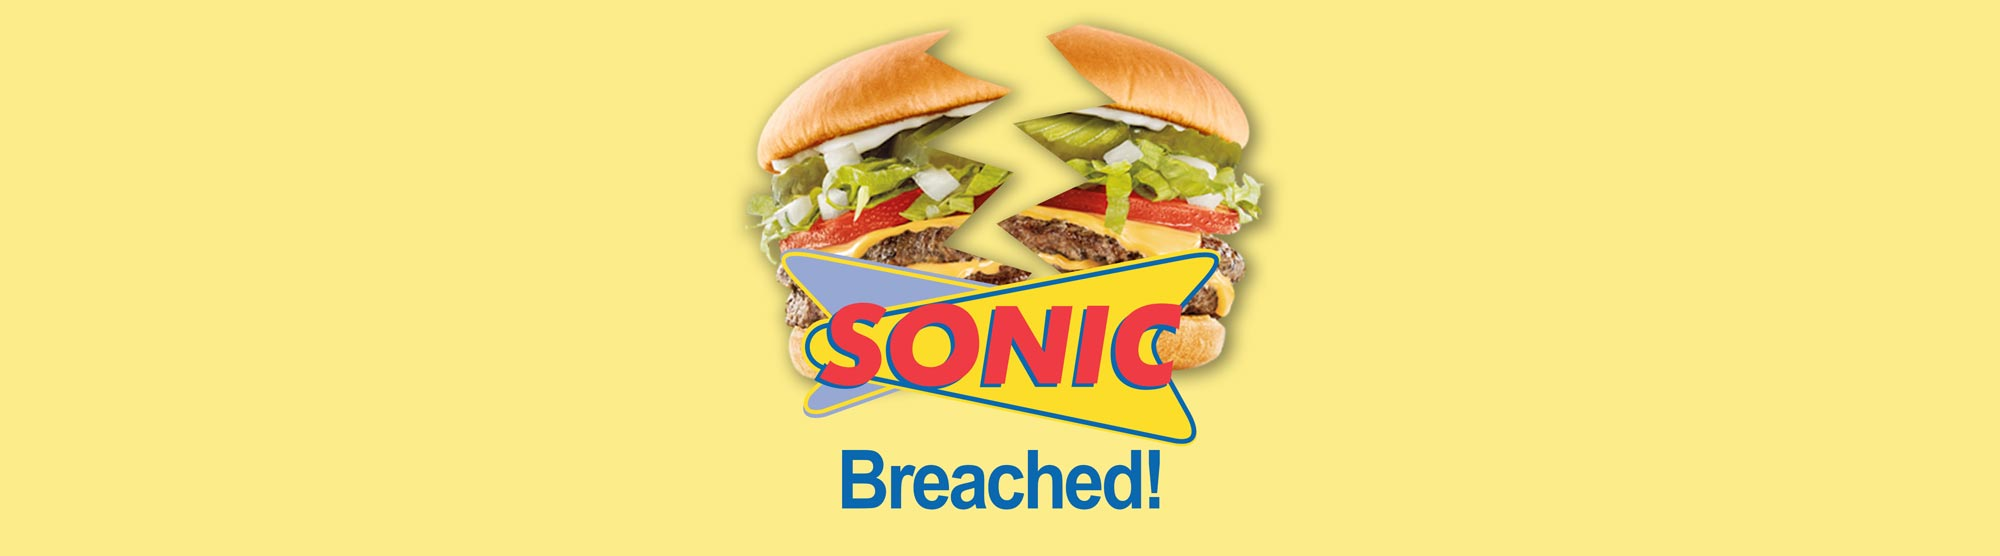 Sonic-Drive-in-Breached.jpg